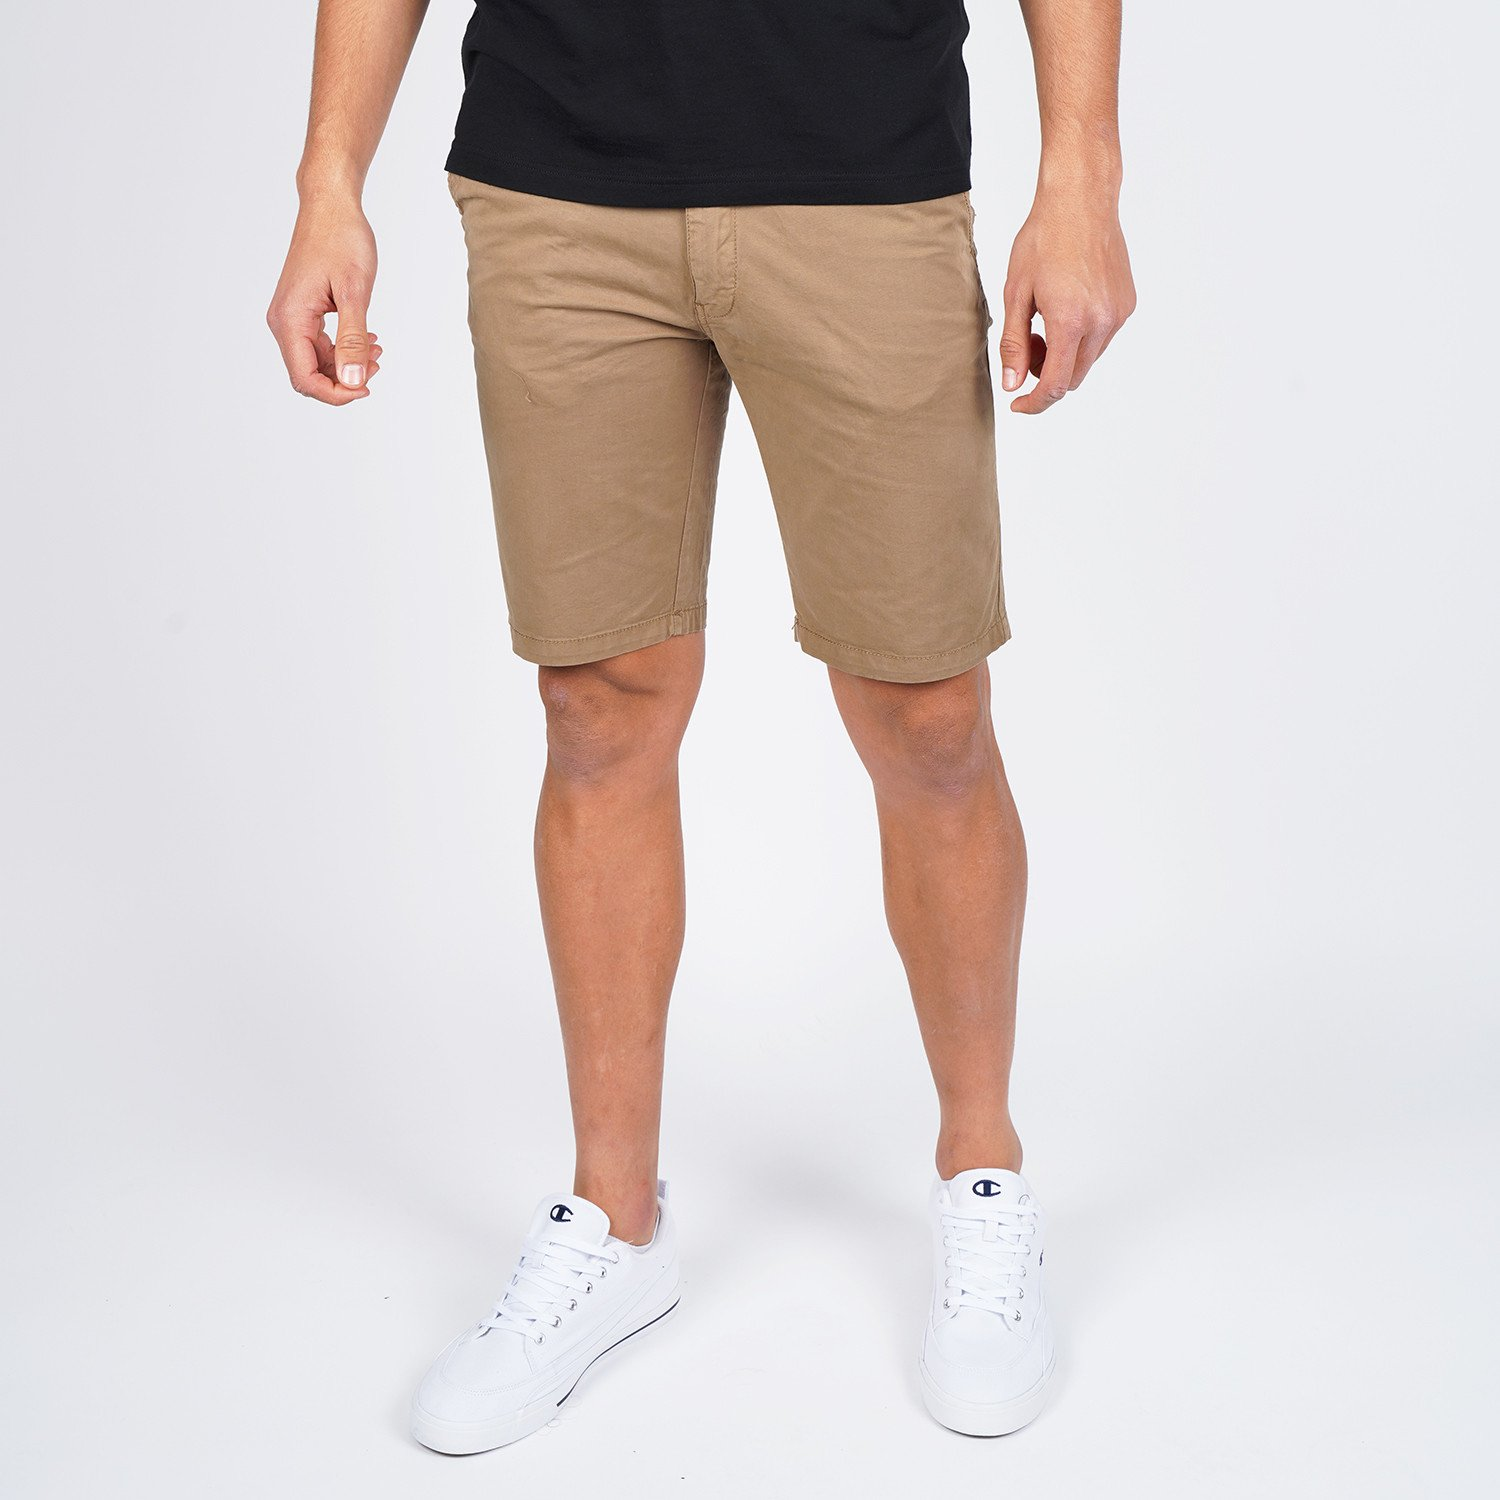 Emerson Men's Stretch Chino Shorts (9000048622_1912)